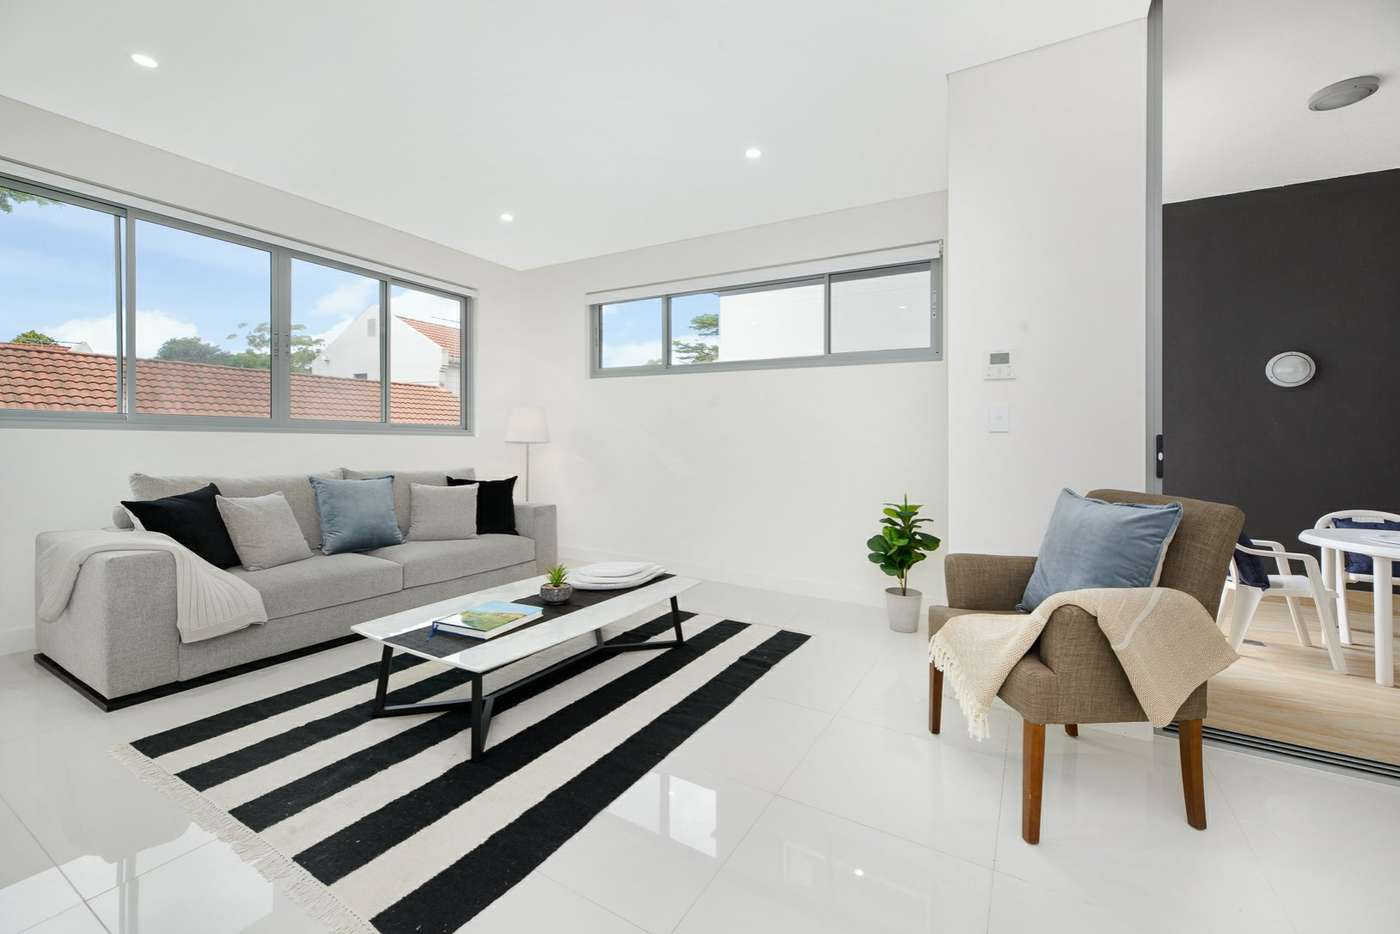 Seventh view of Homely unit listing, 183-185 Mona Vale Road, St Ives NSW 2075